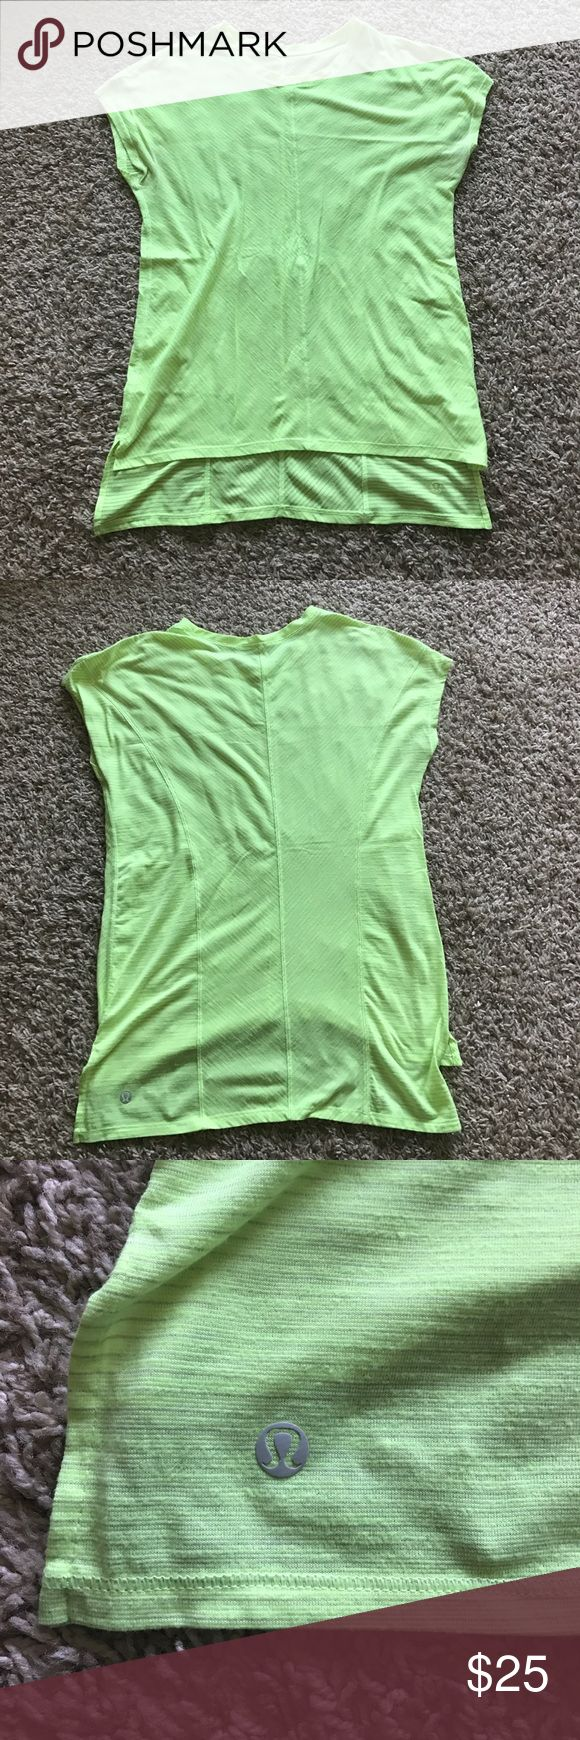 LULULEMON bright green short sleeve top size 4 Lululemon Brand new condition short sleeve neon green scoop neck t shirt size 4 somewhat loose fit lululemon athletica Tops Tees - Short Sleeve